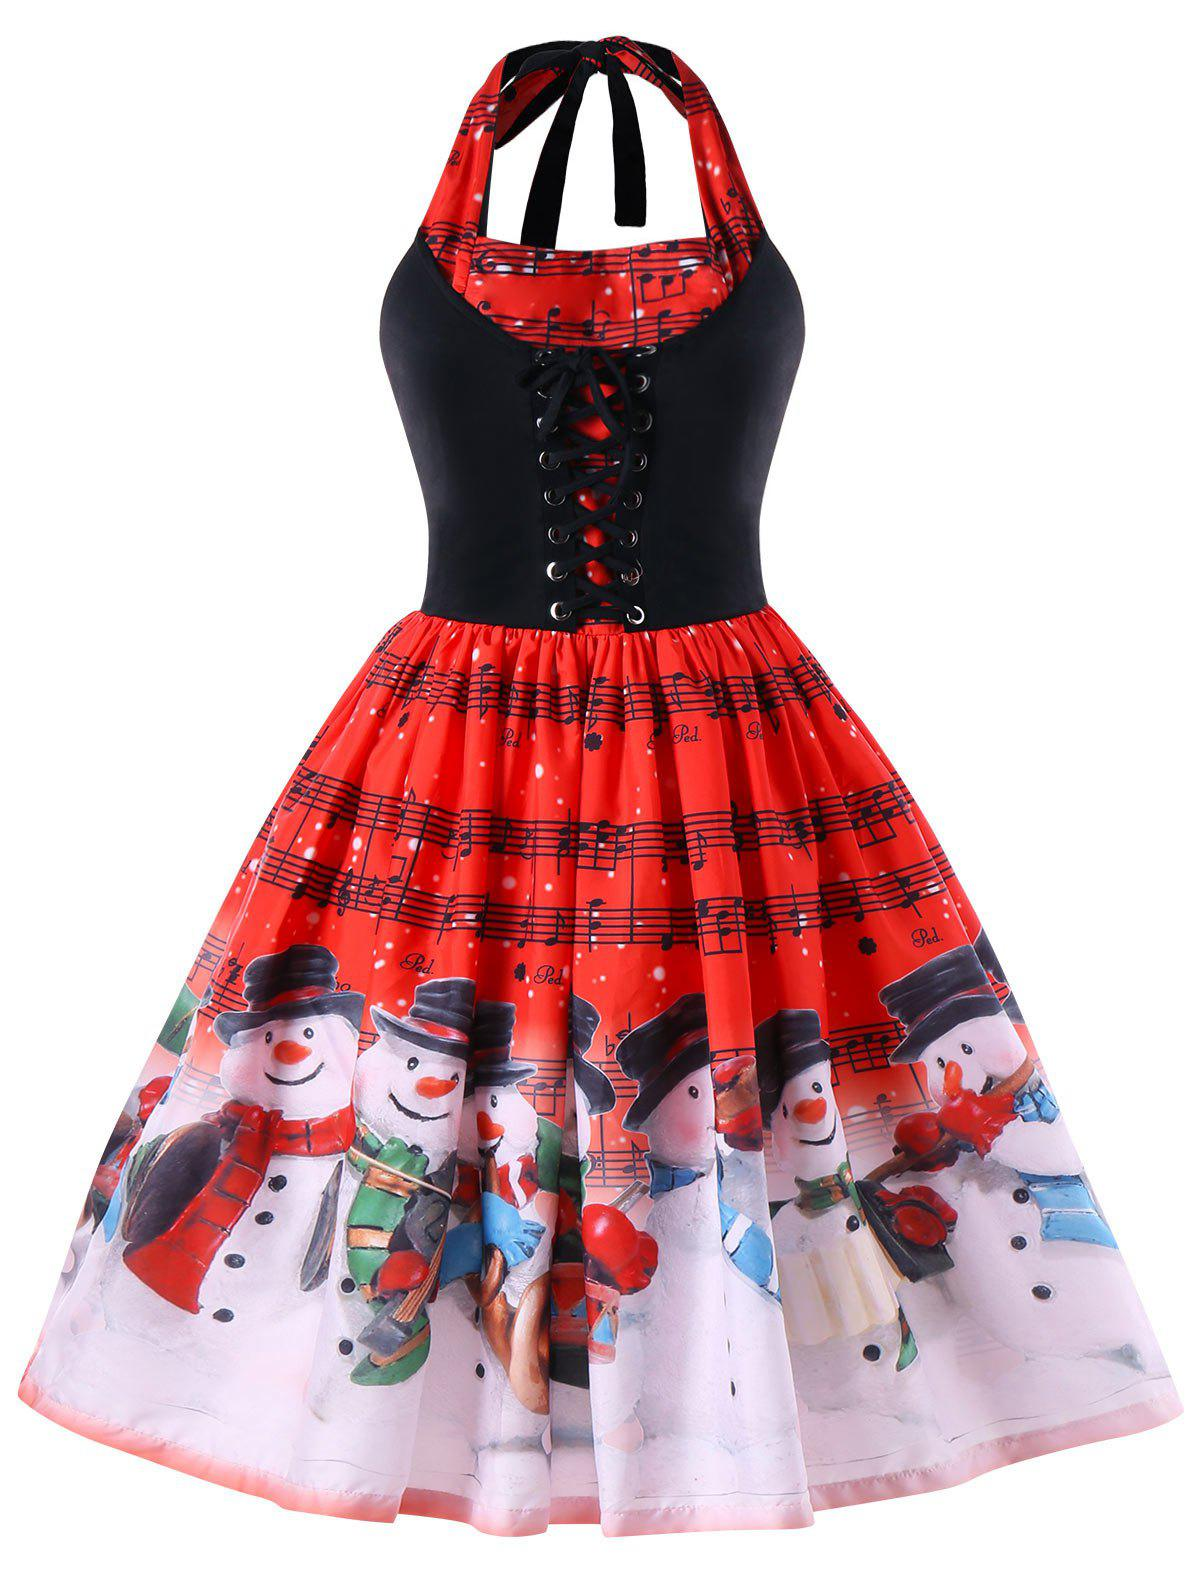 Christmas Plus Size Music Notes Halter Neck DressWOMEN<br><br>Size: 4XL; Color: RED; Style: Vintage; Material: Polyester; Silhouette: A-Line; Dresses Length: Mid-Calf; Neckline: Halter; Sleeve Length: Sleeveless; Pattern Type: Others; With Belt: No; Season: Fall,Spring; Weight: 0.3000kg; Package Contents: 1 x Dress;